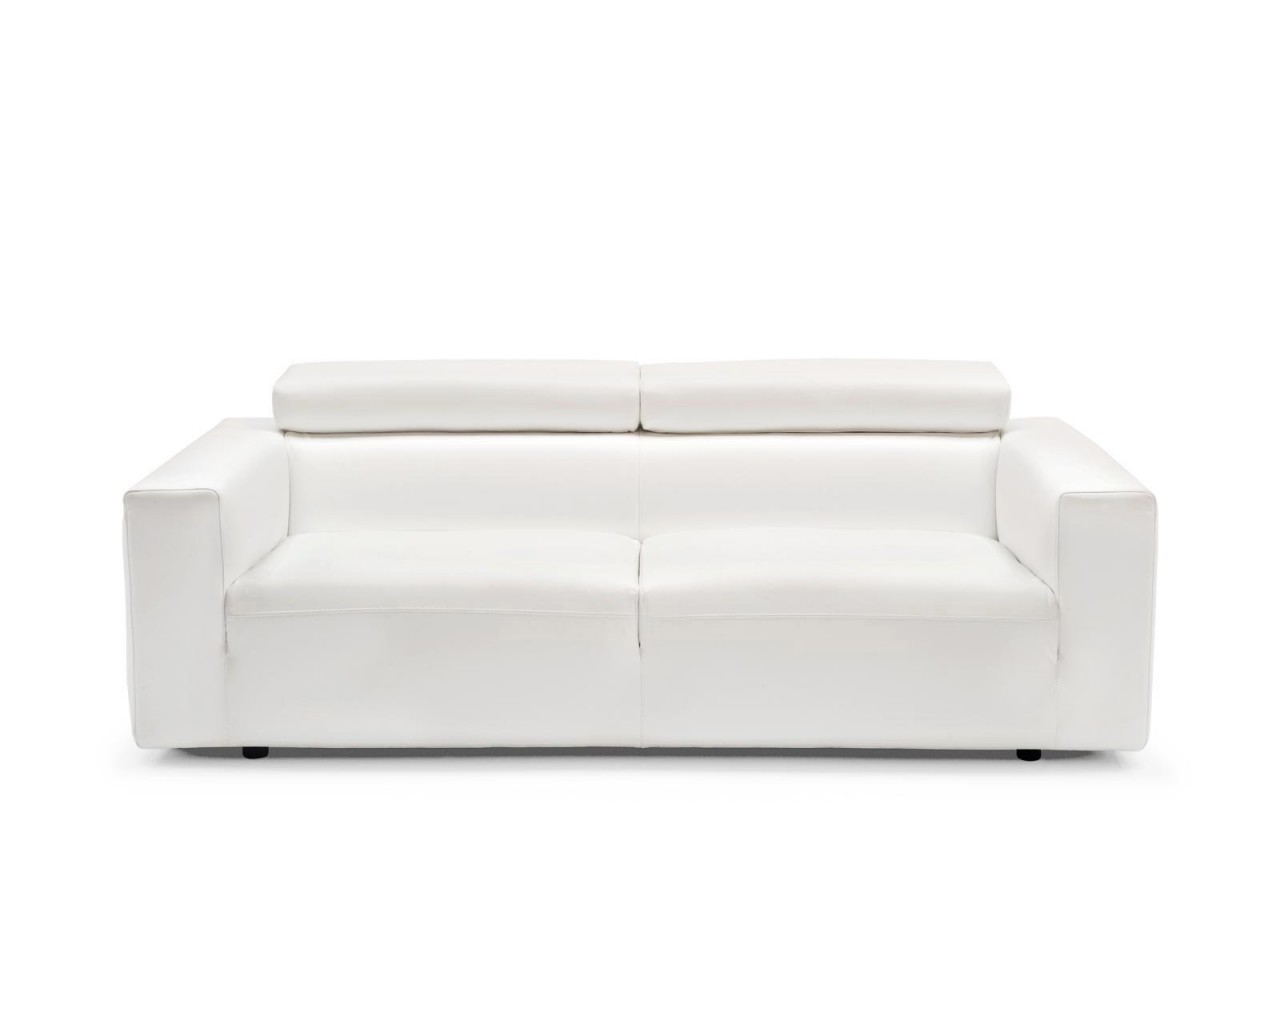 Interio Sofa Modular Sofa Upgrade Interio